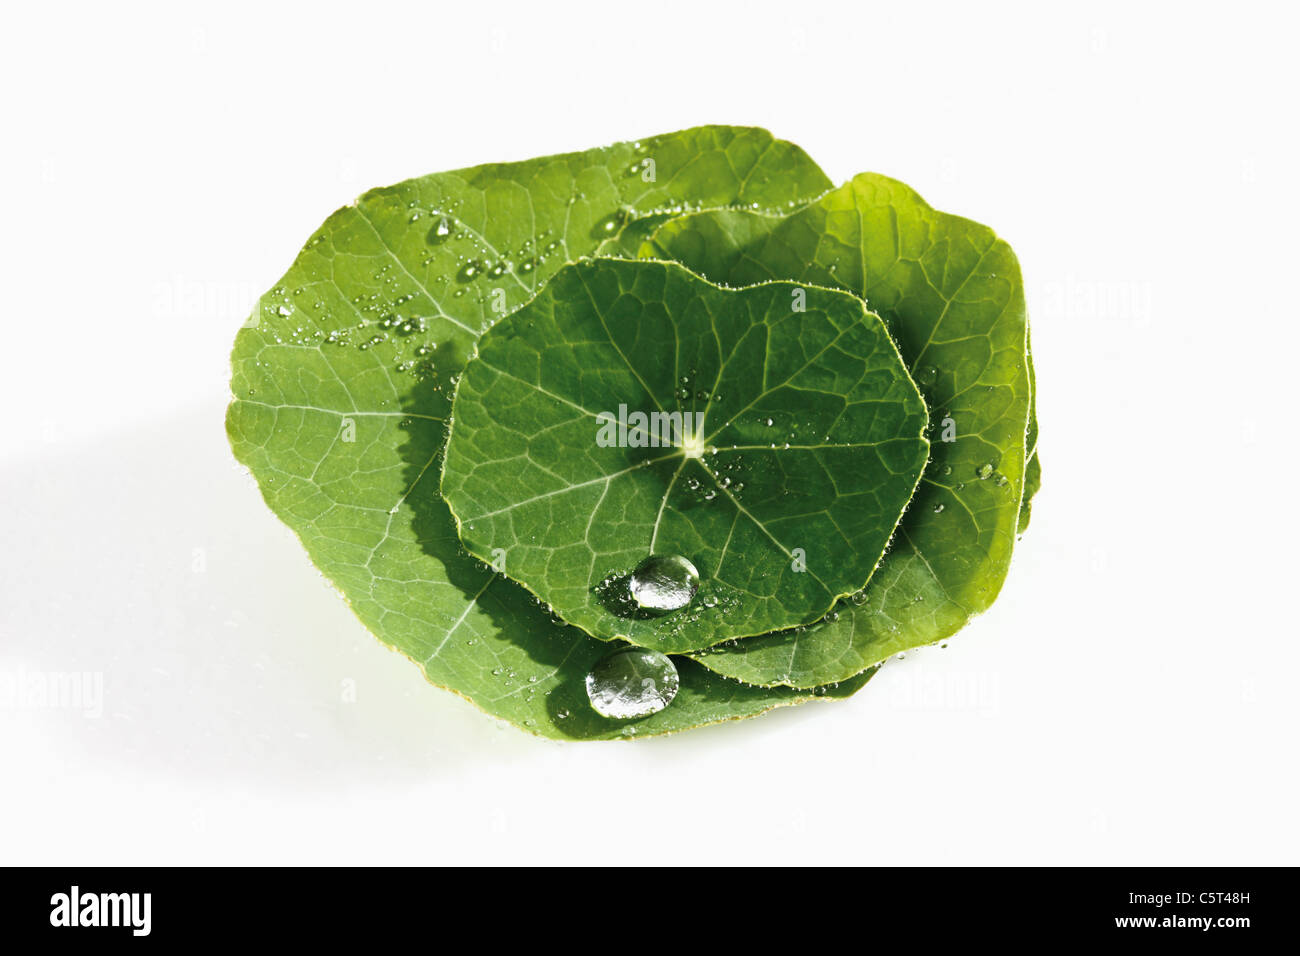 Water droplet on top of Nasturtium (Tropaeolum)  leaf - Stock Image